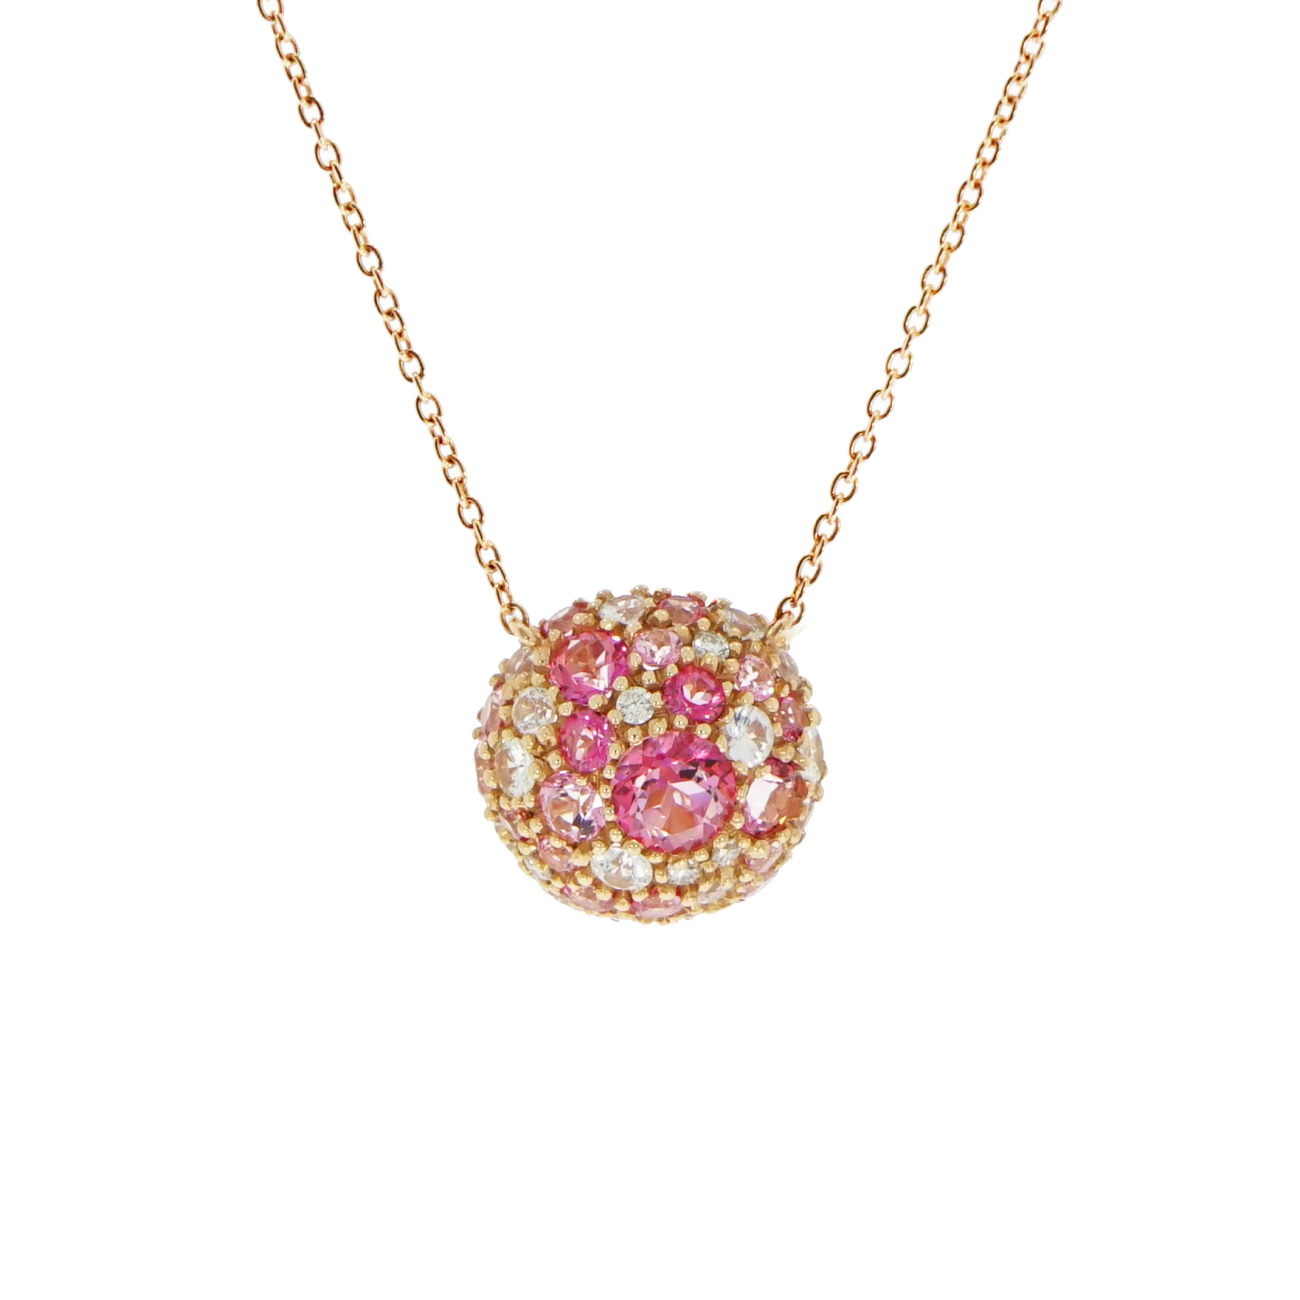 Brumani Jewelry - Baoba Bubbles Pink Tourmalines Necklace | Manfredi Jewels